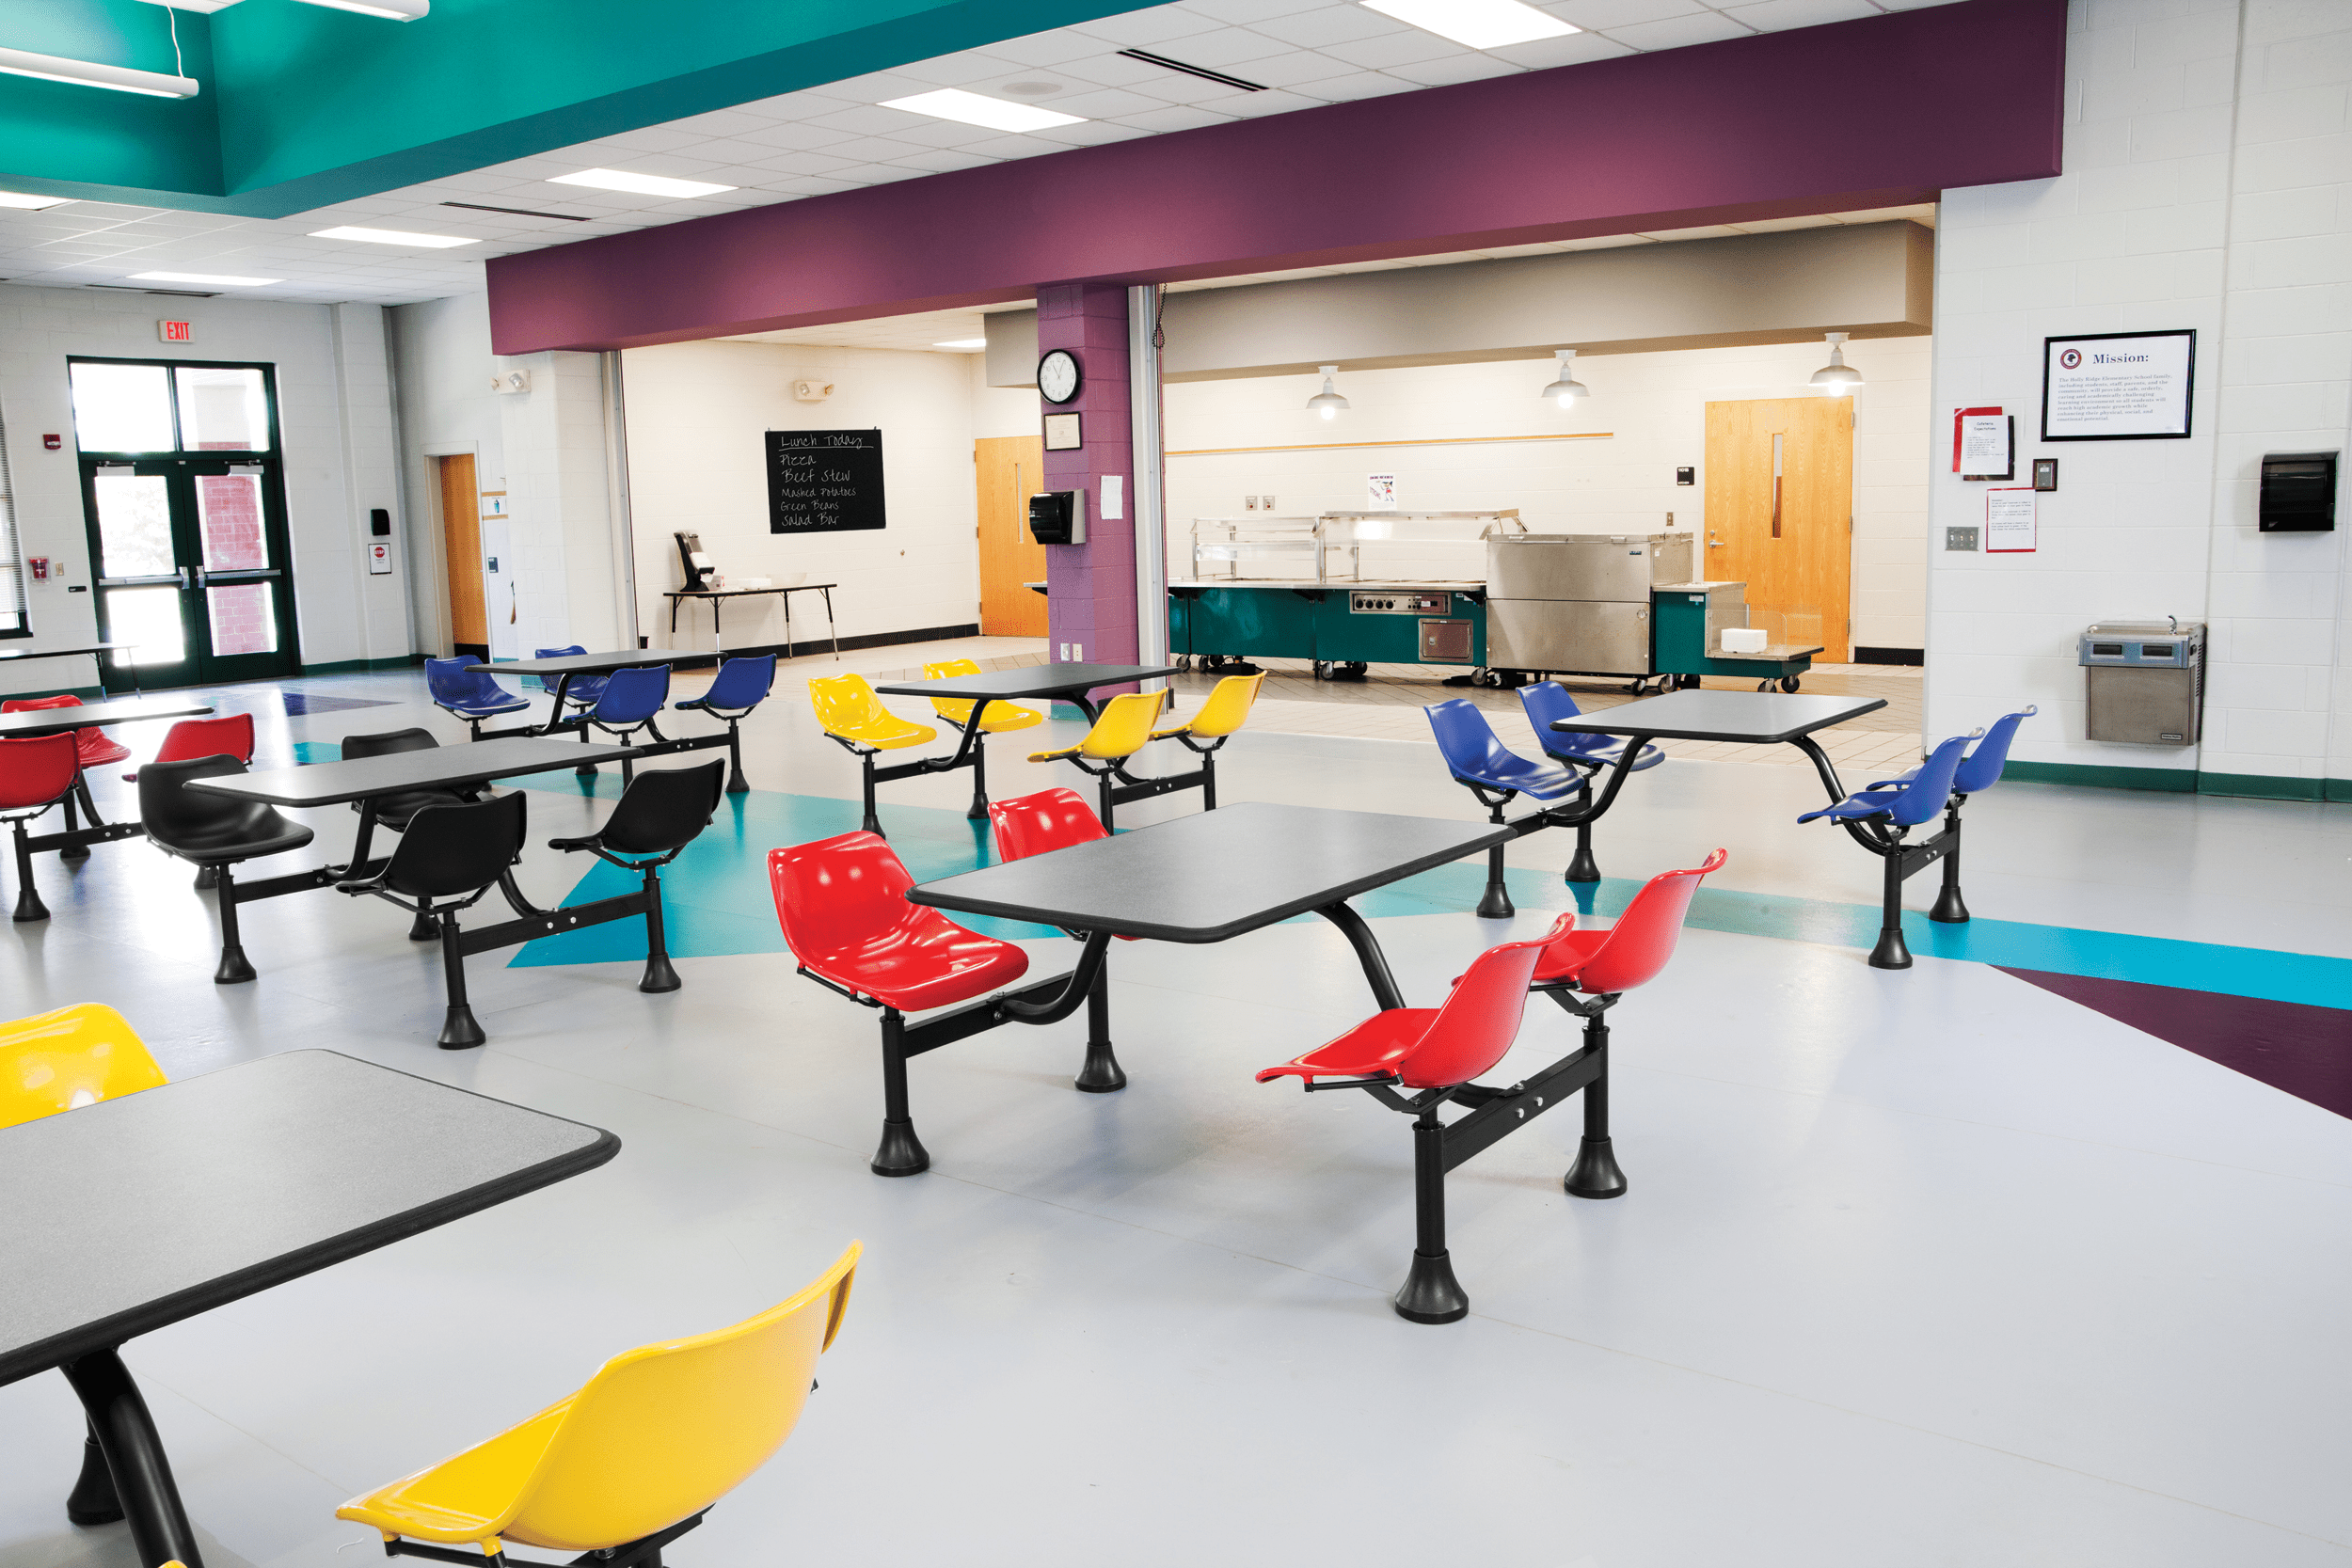 Cafeteria Seating Mix Or Match Colors 8886610845 Fast Delivery